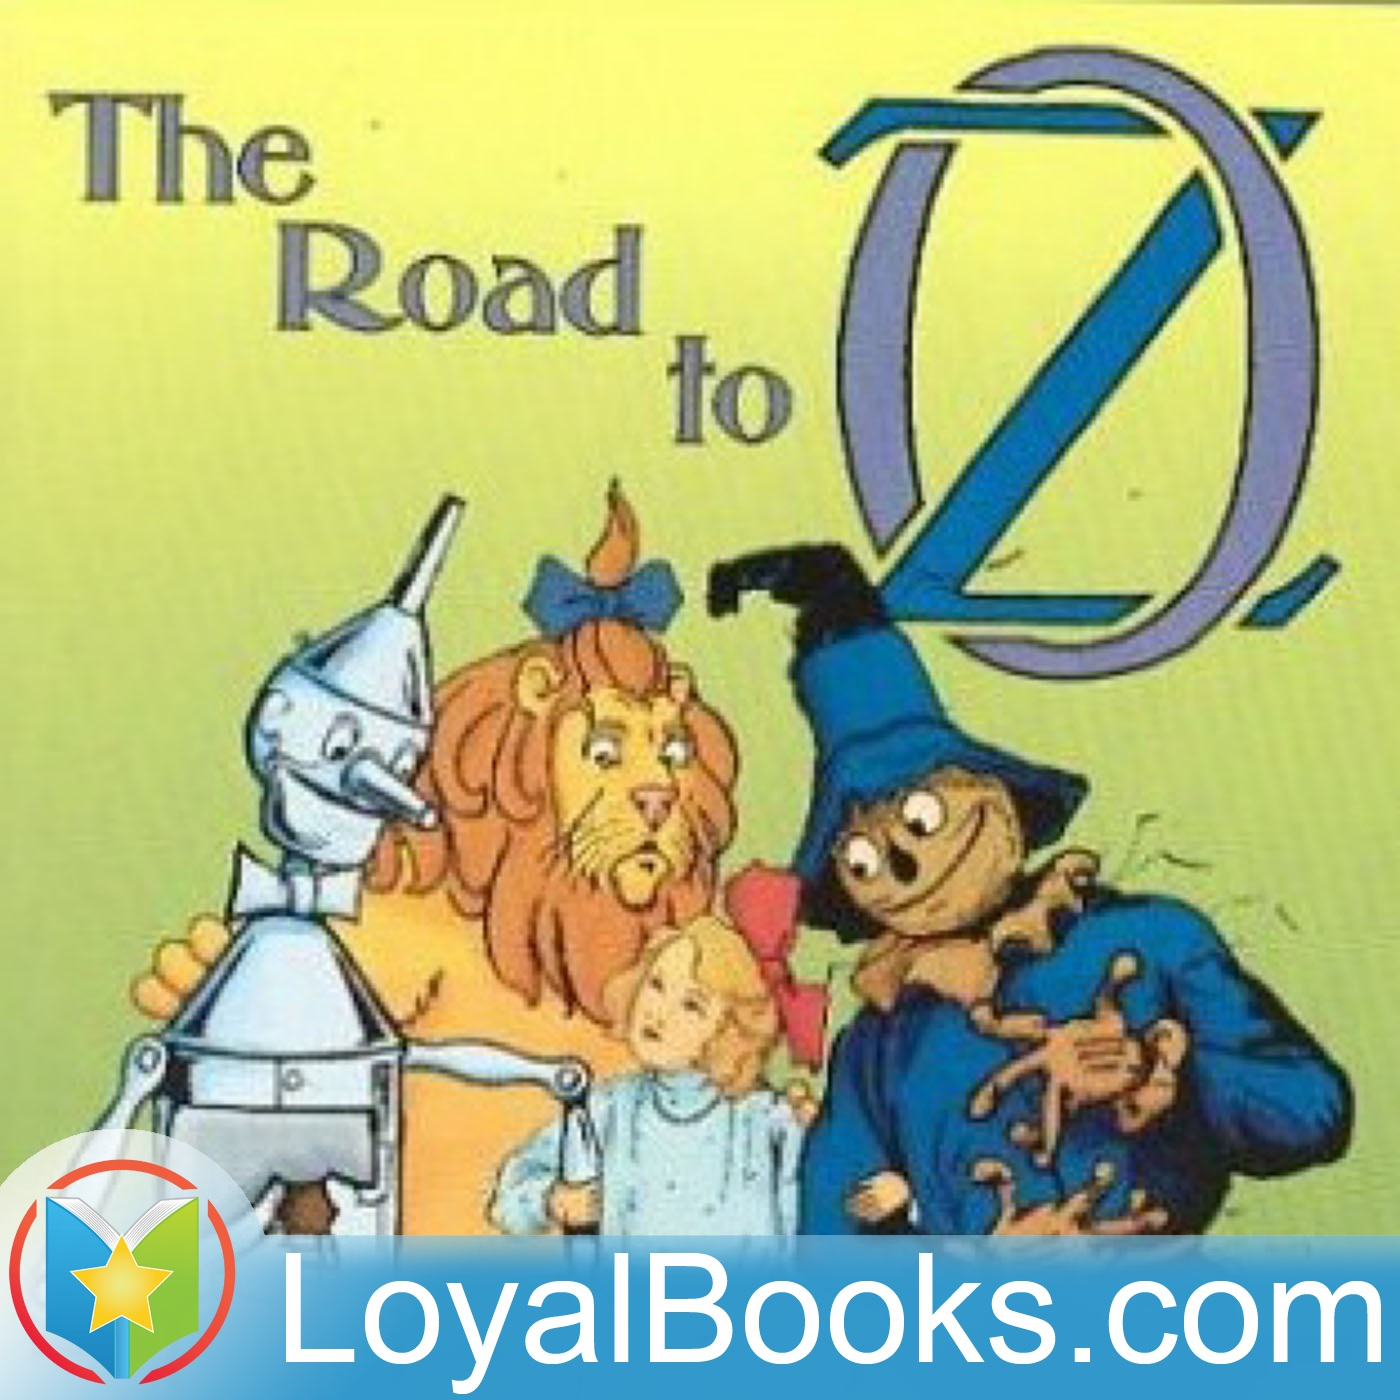 <![CDATA[The Road to Oz by L. Frank Baum]]>